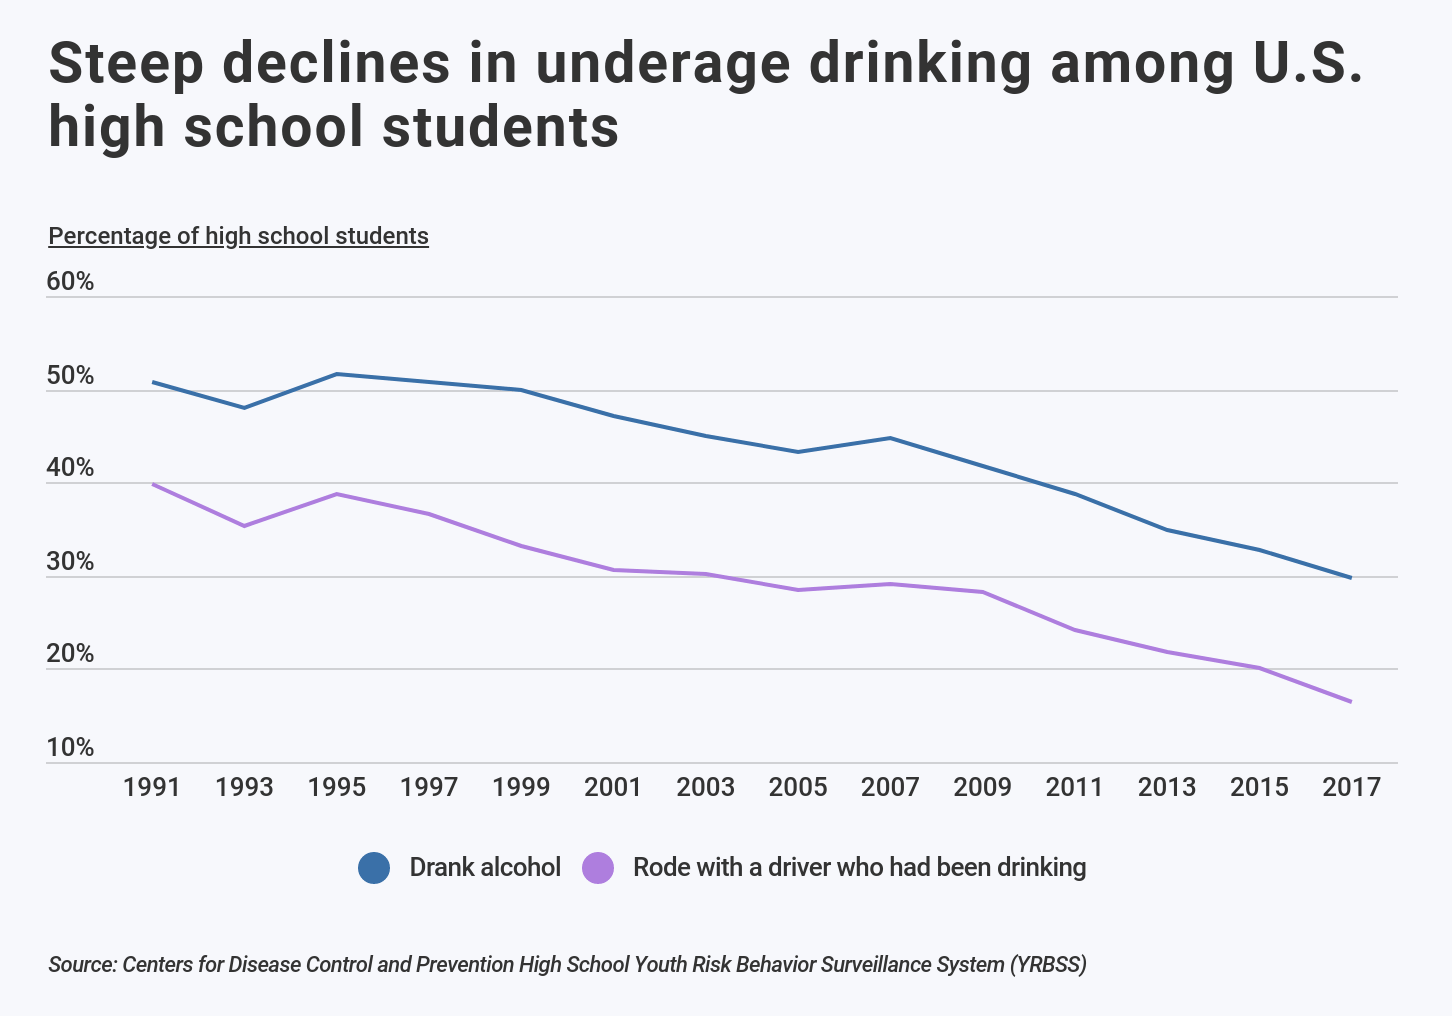 Line graph showing decline in U.S. underage drinking over time